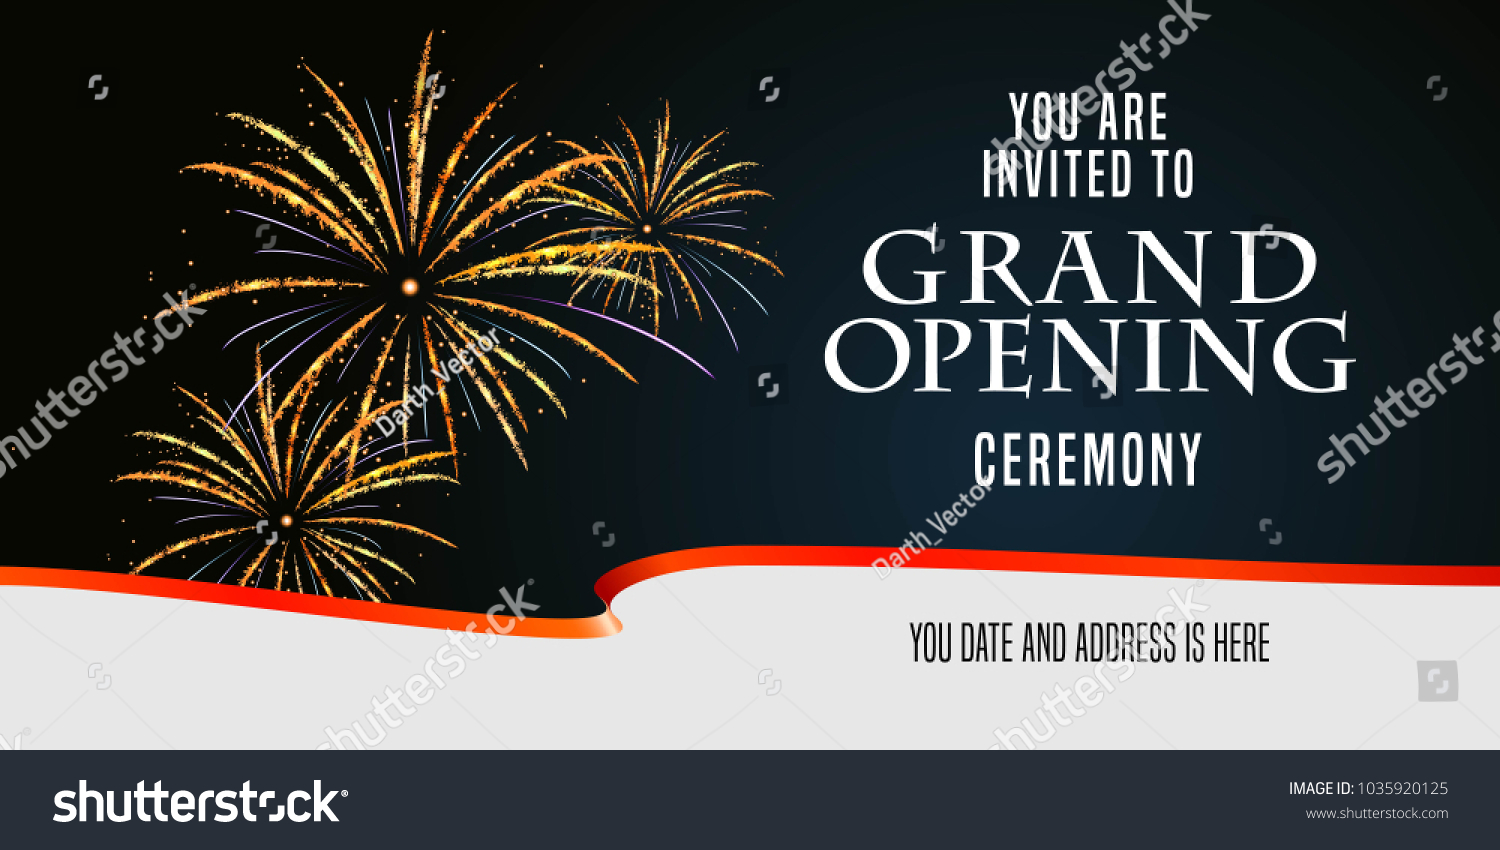 grand opening vector illustration background invitation card with firework and scissors cutting red ribbon